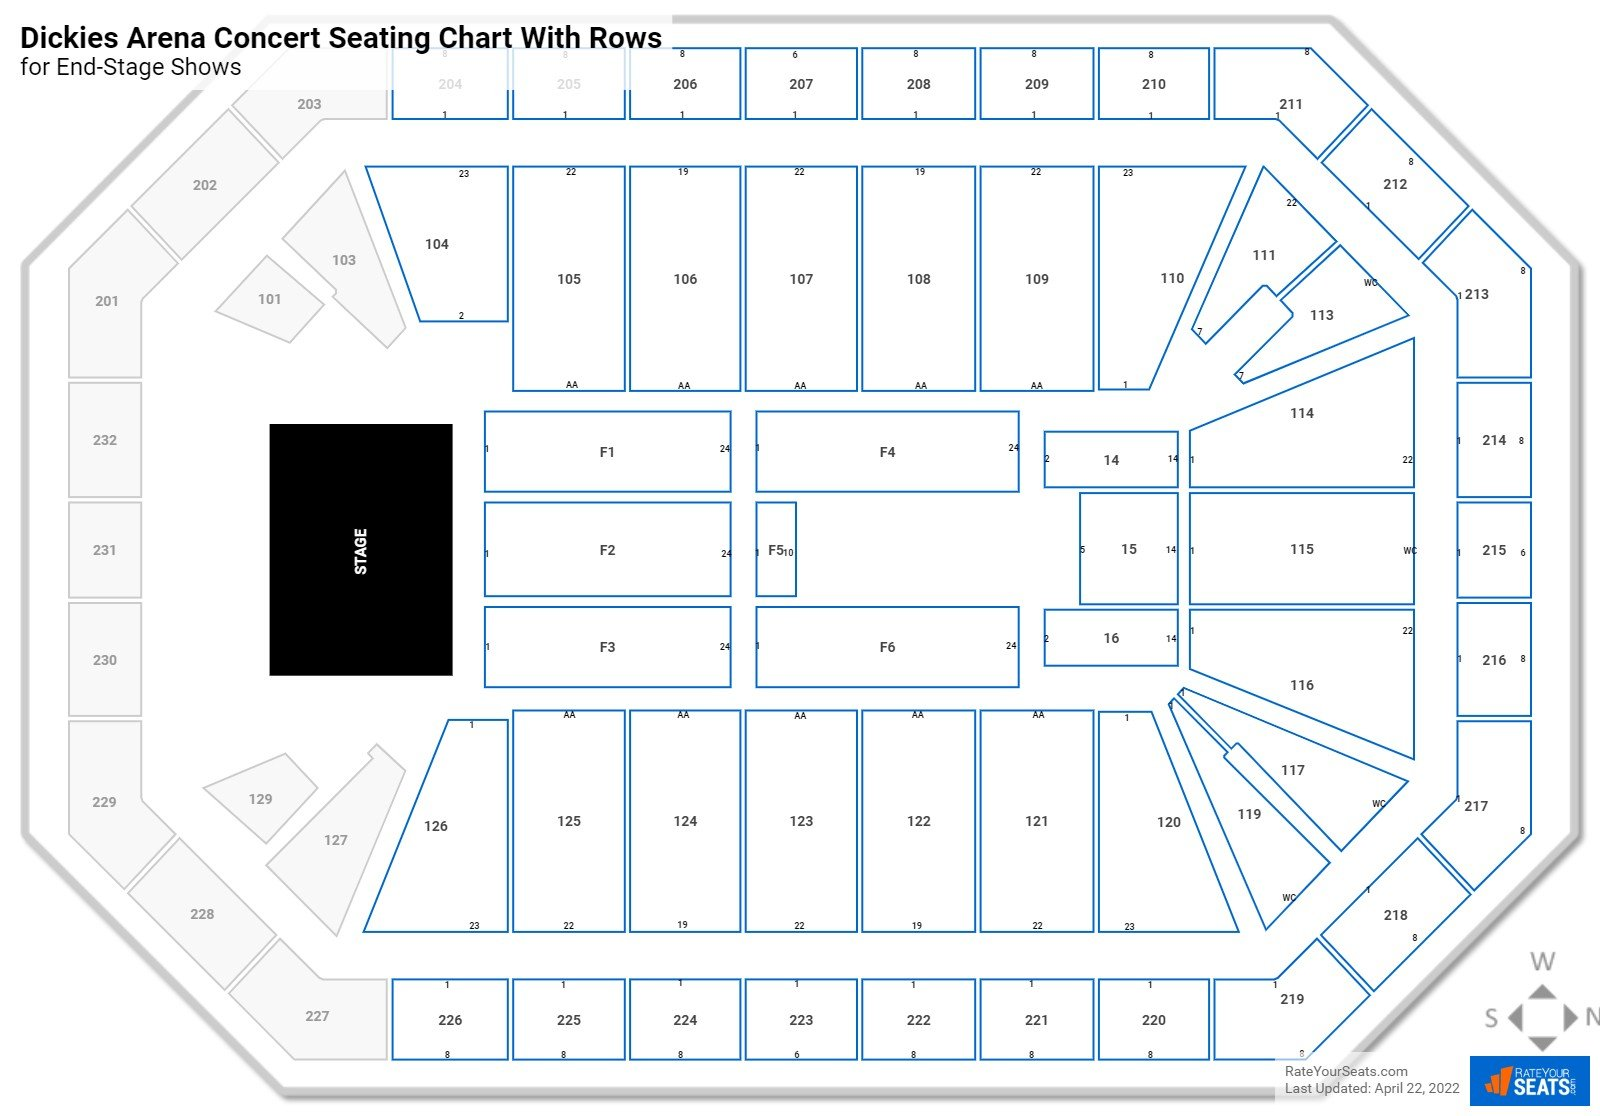 Dickies Arena seating chart with rows concert